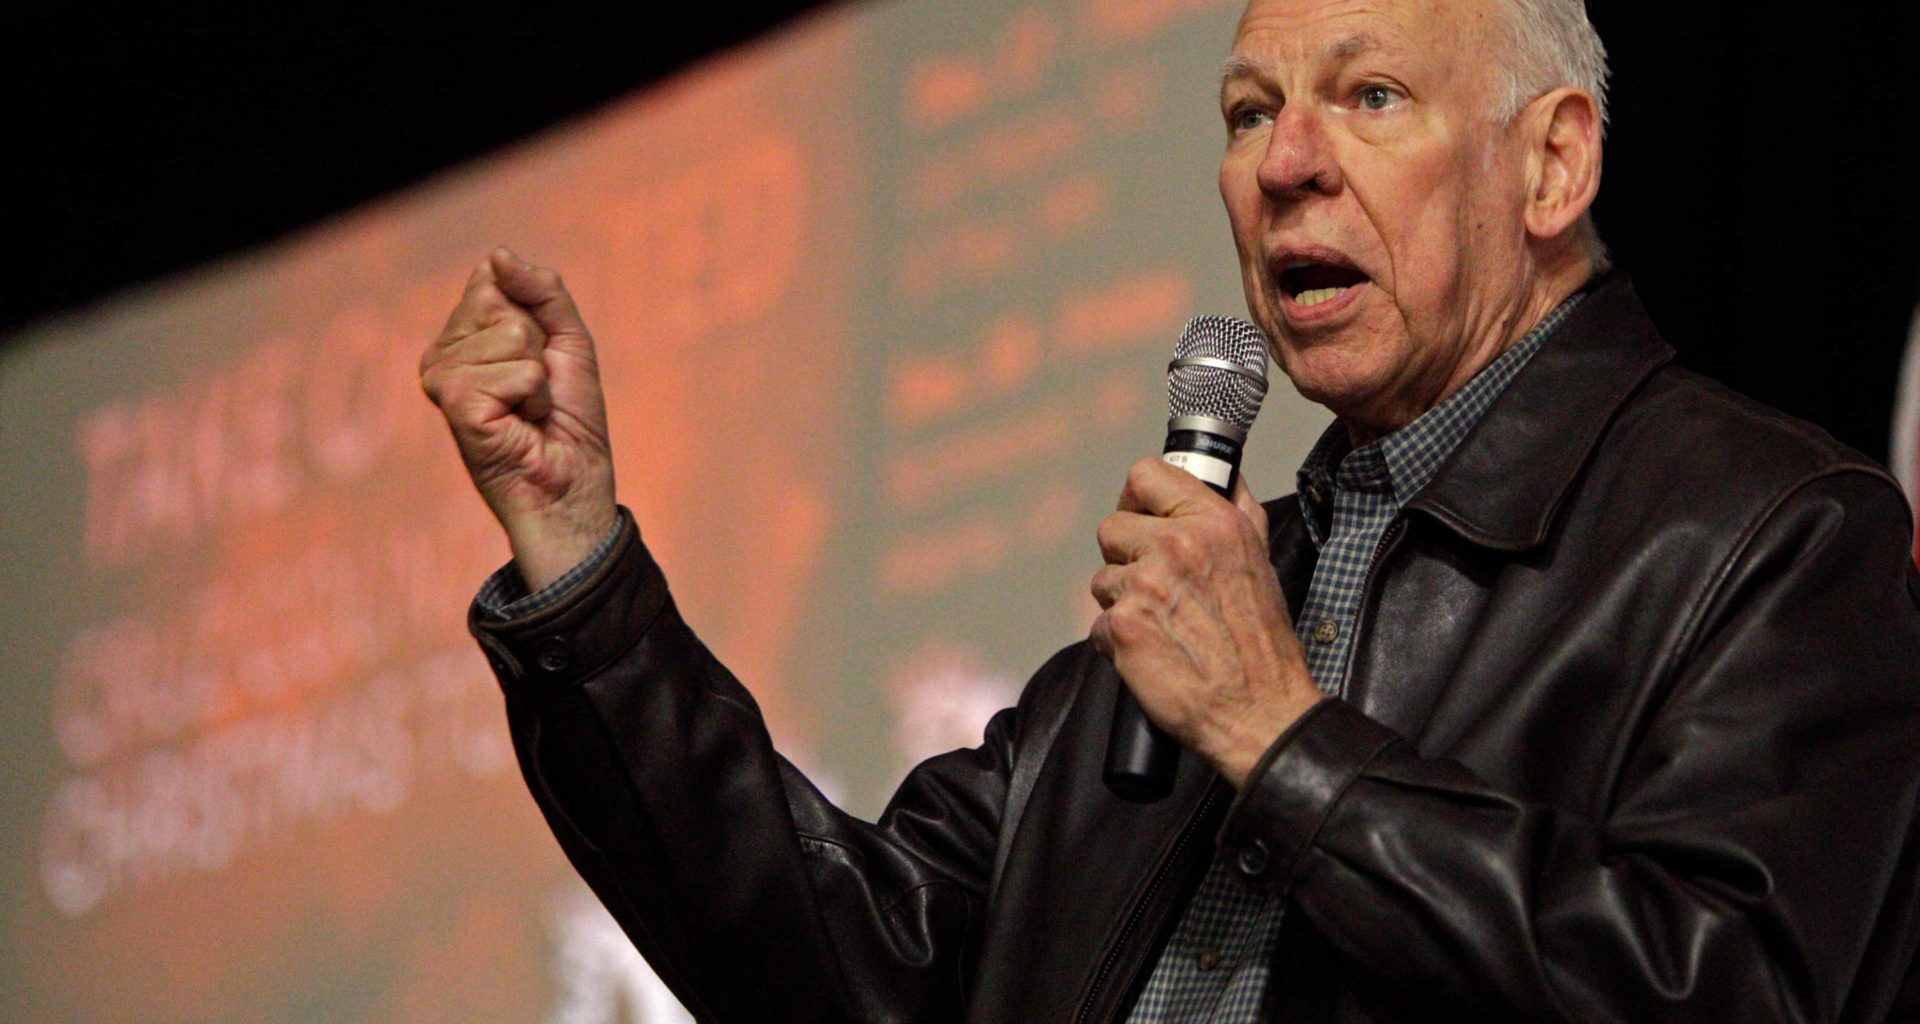 Listen To Rafael Cruz Explain How God Told Ted's Wife He Should Run For President (Video)